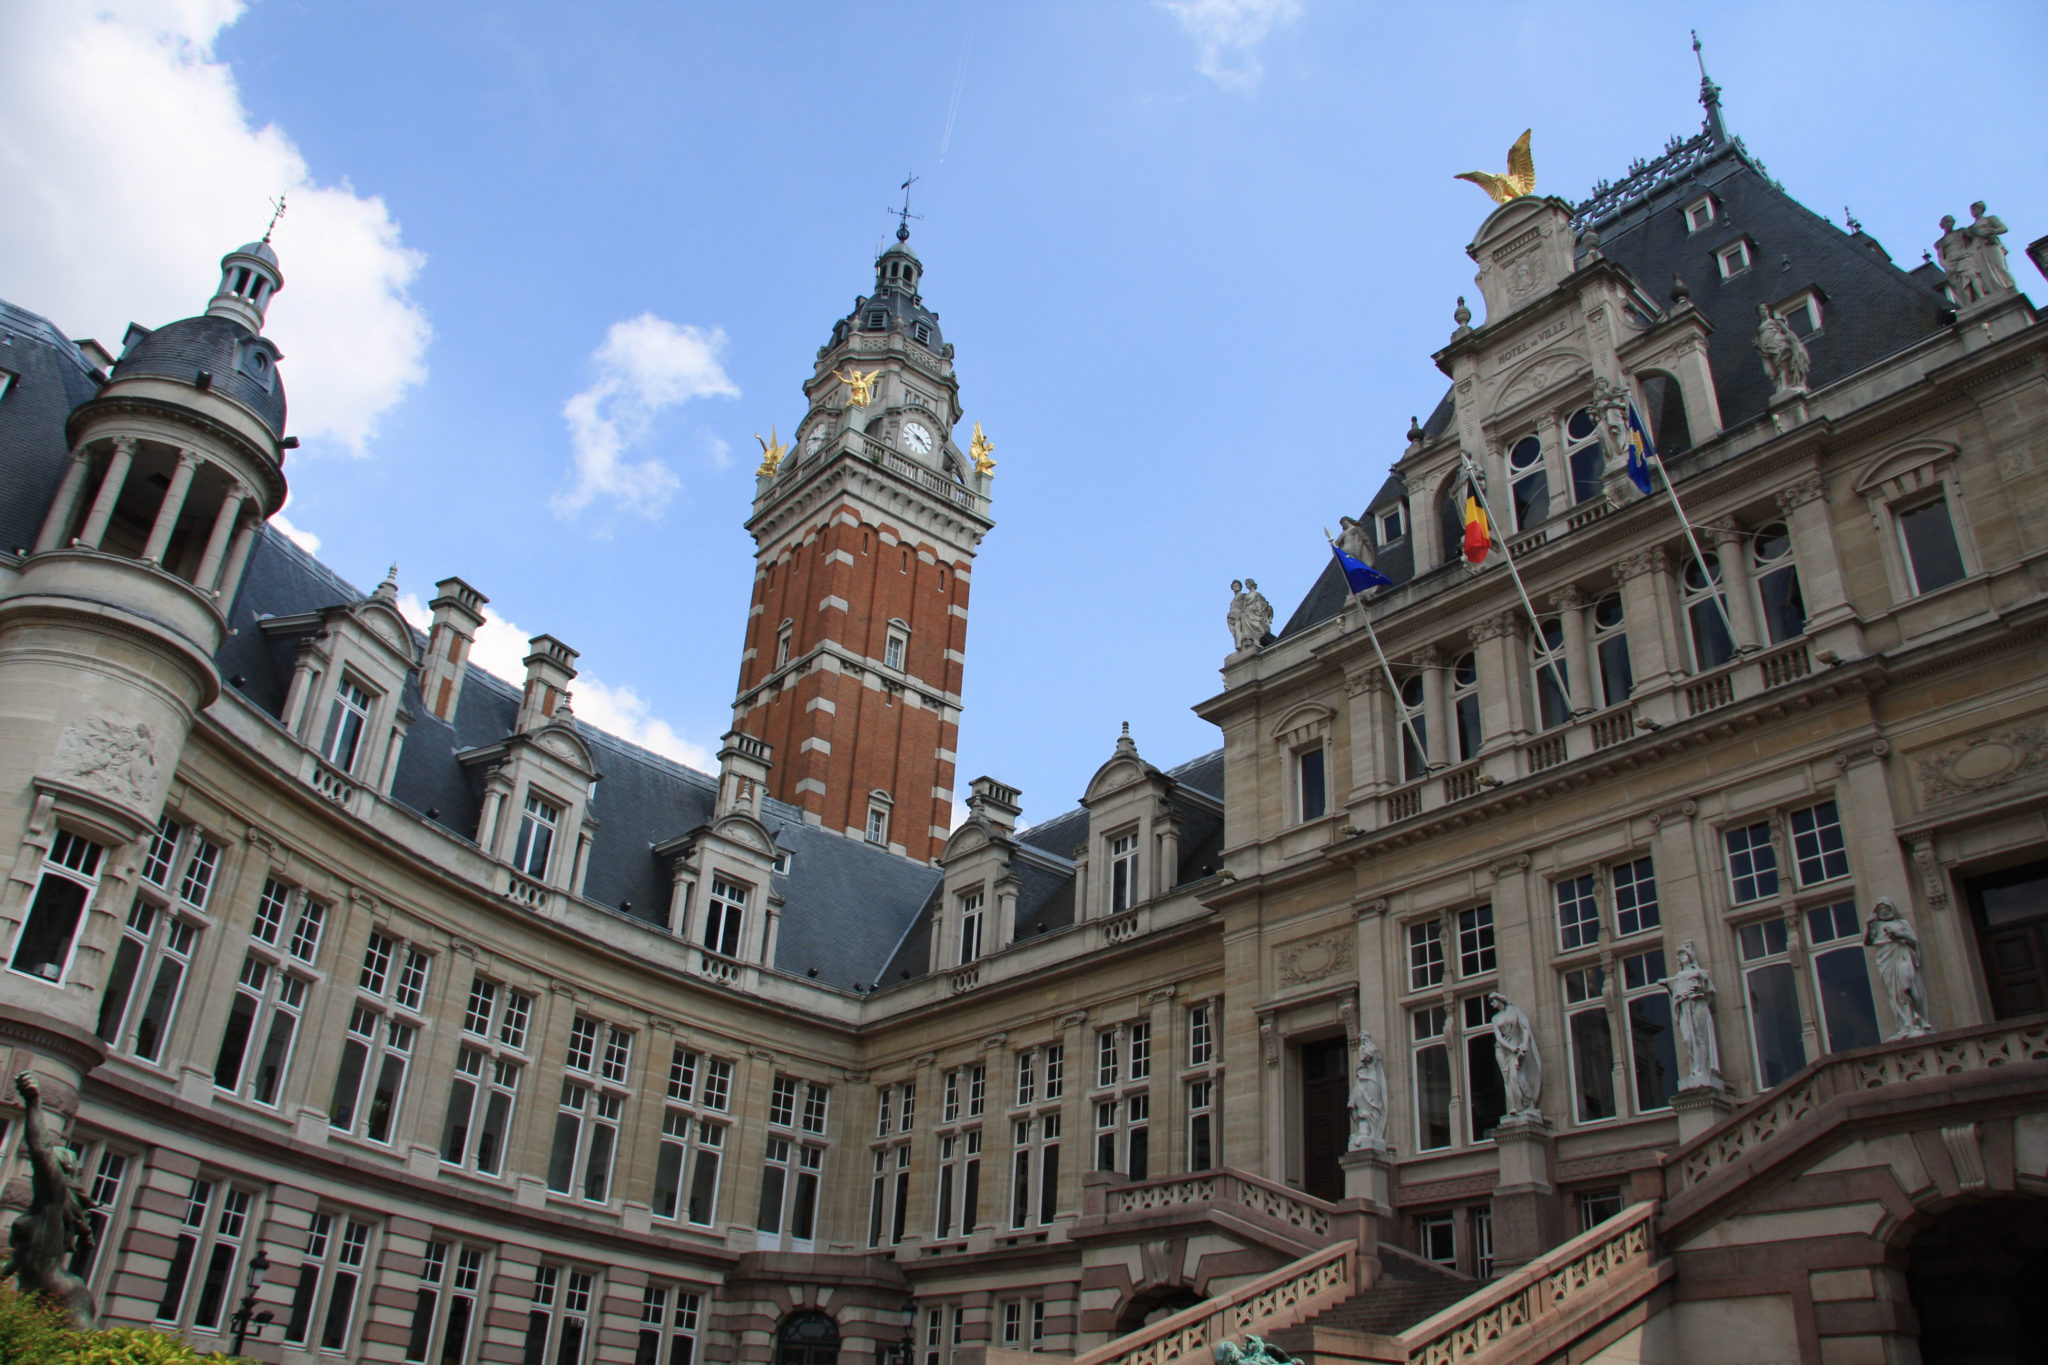 Pictures of the city of Brussels